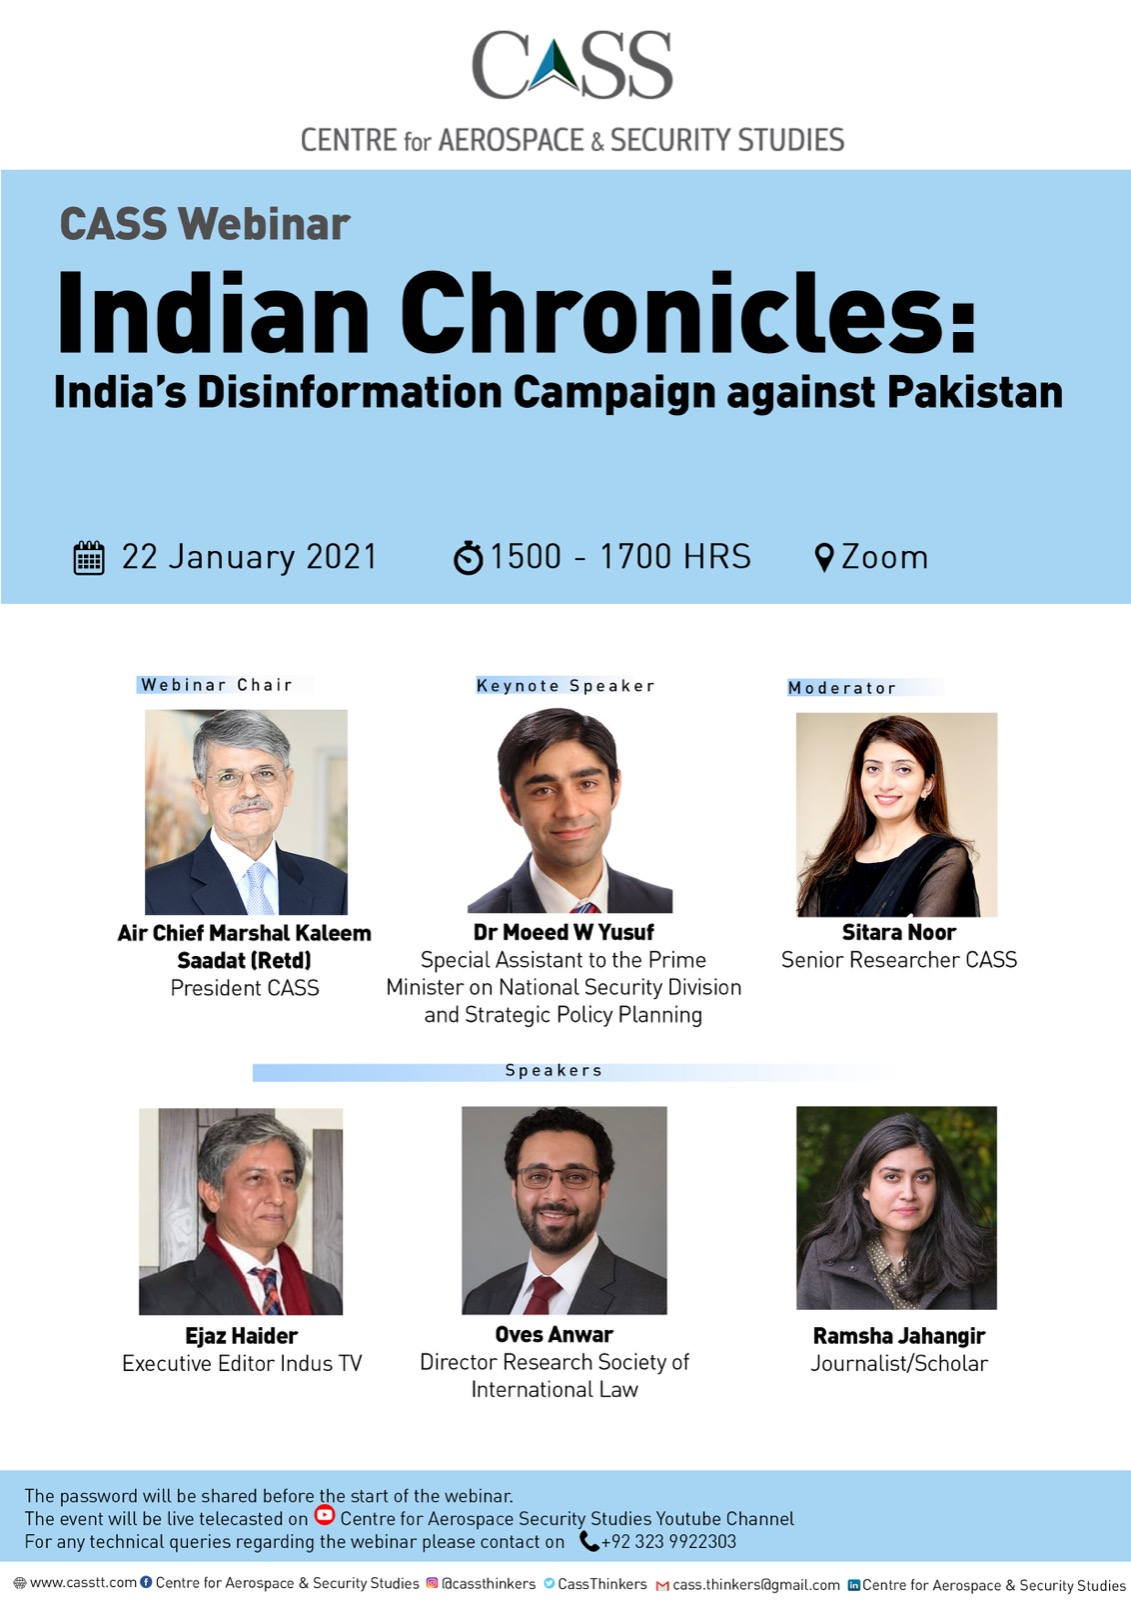 Indian Chronicles: India's Disinformation Campaign Against Pakistan